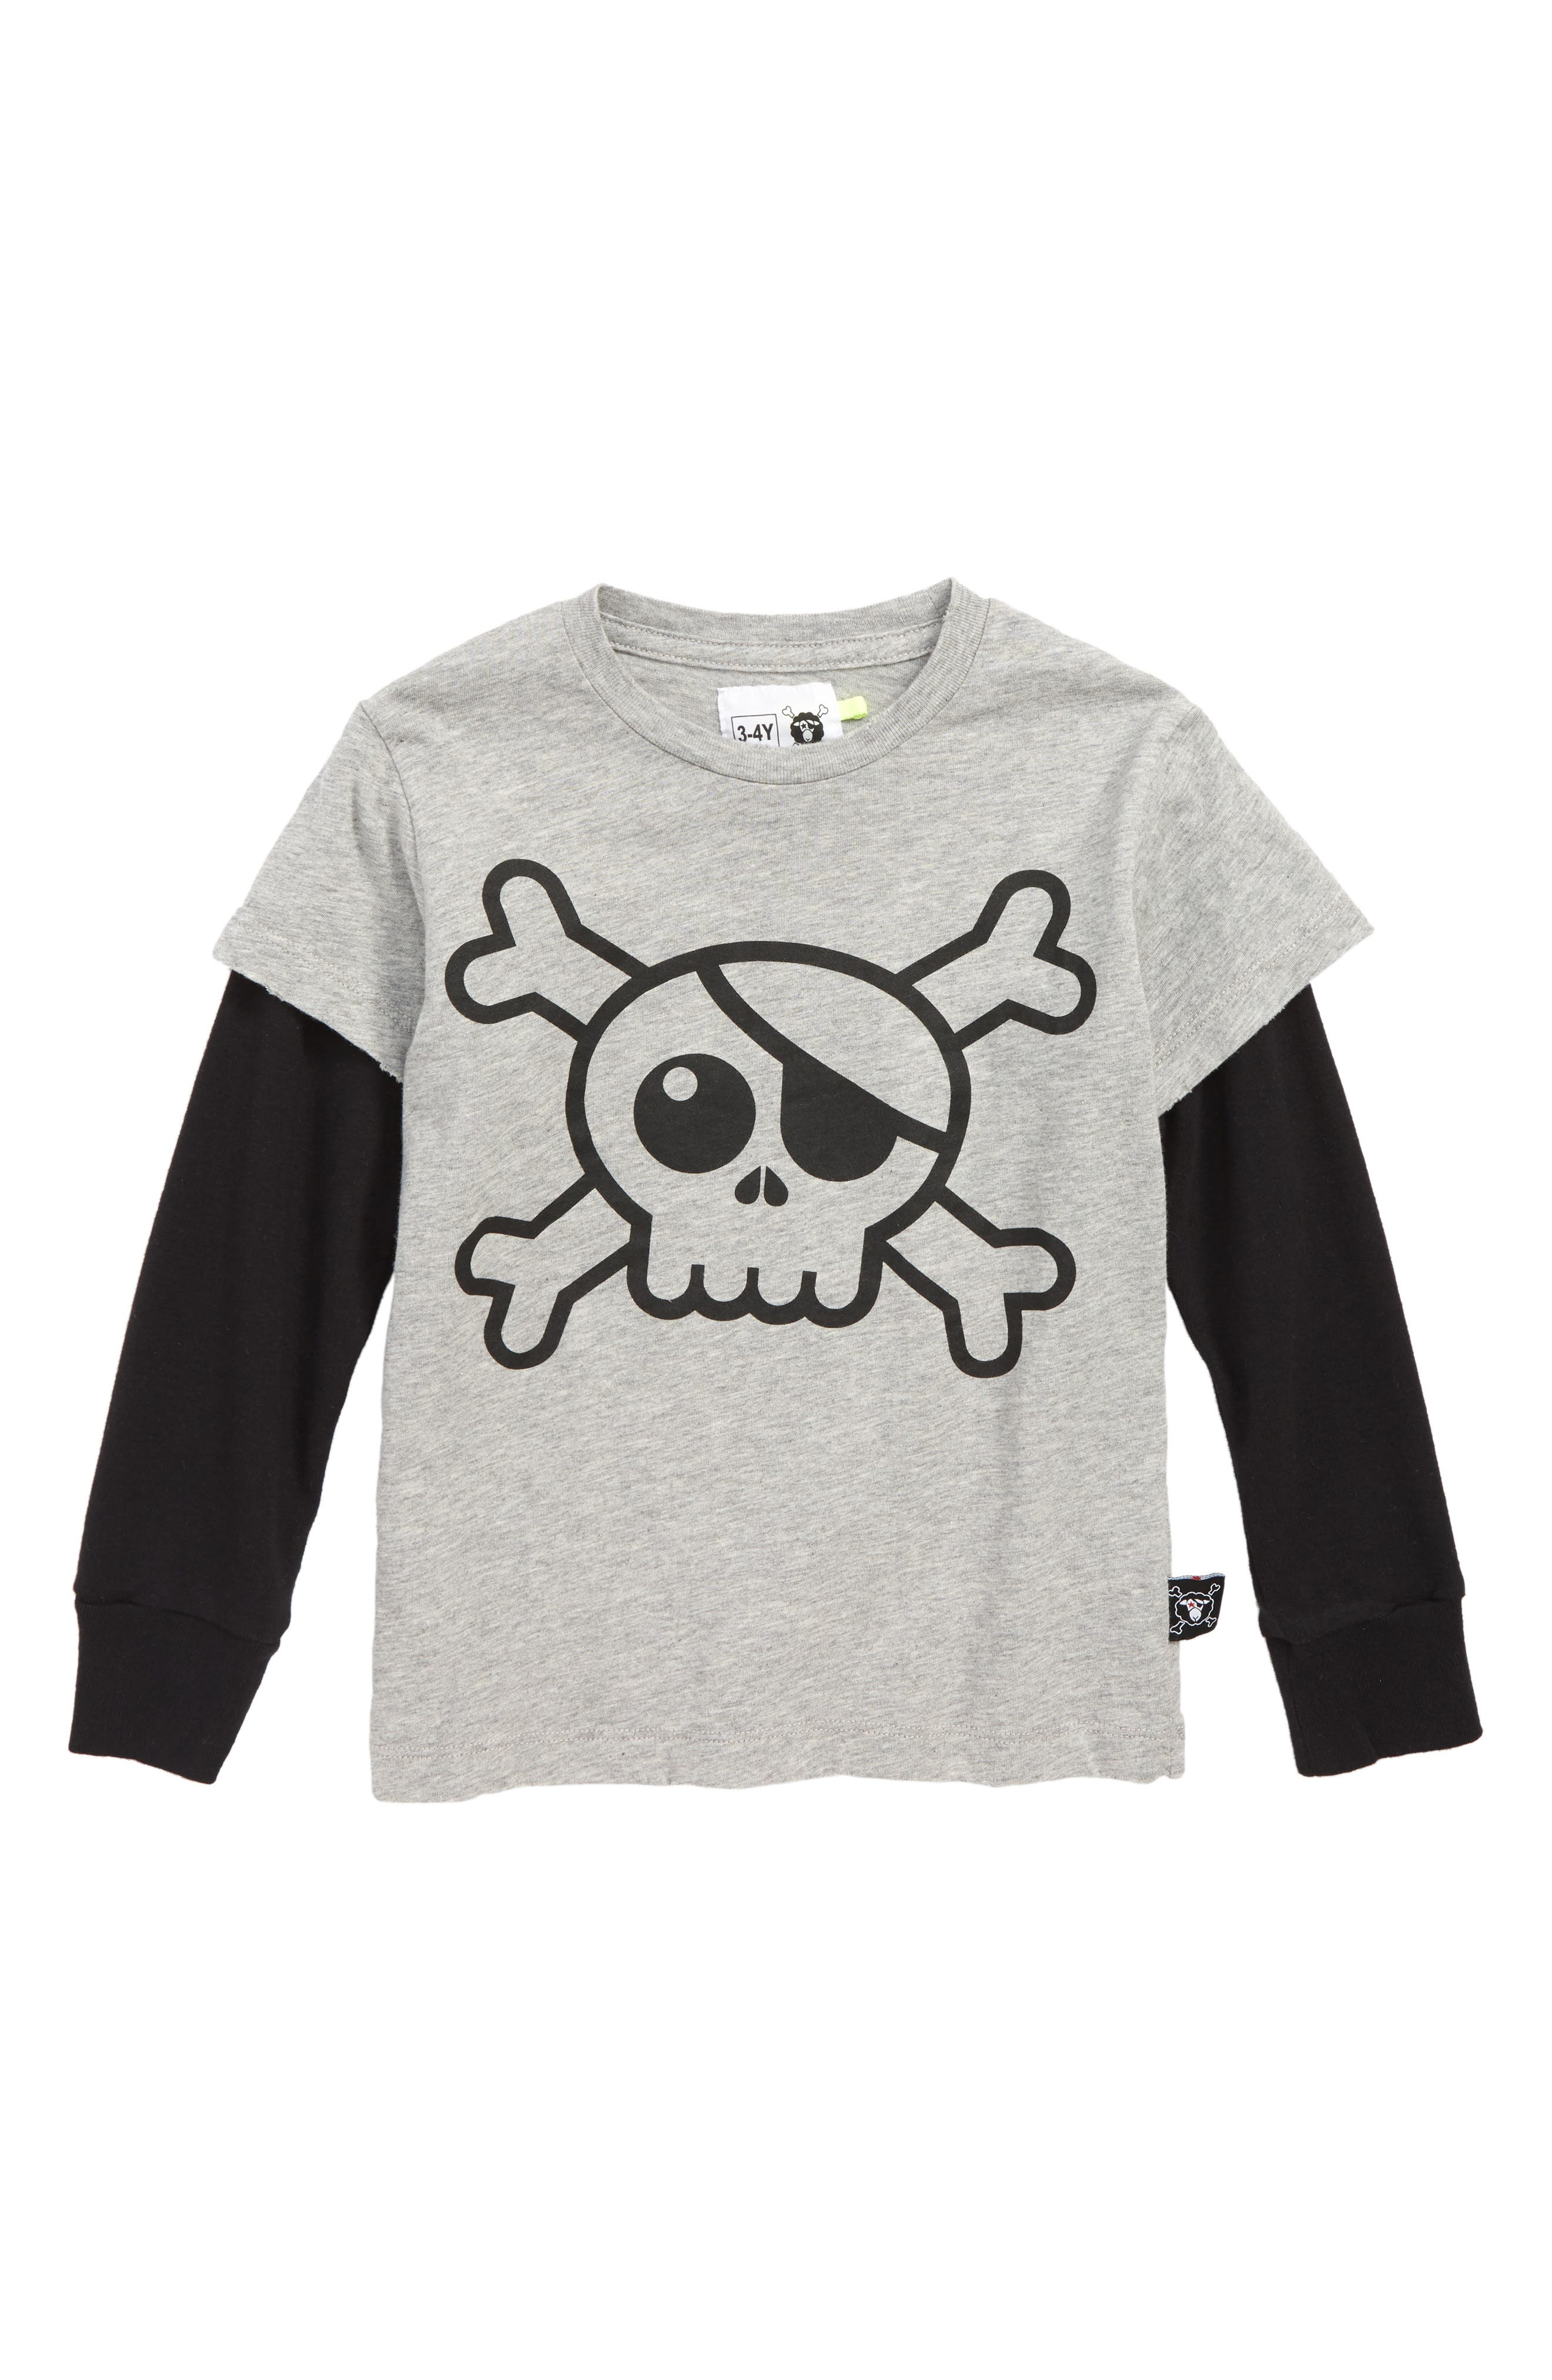 Skull Patch T-Shirt,                         Main,                         color, 027